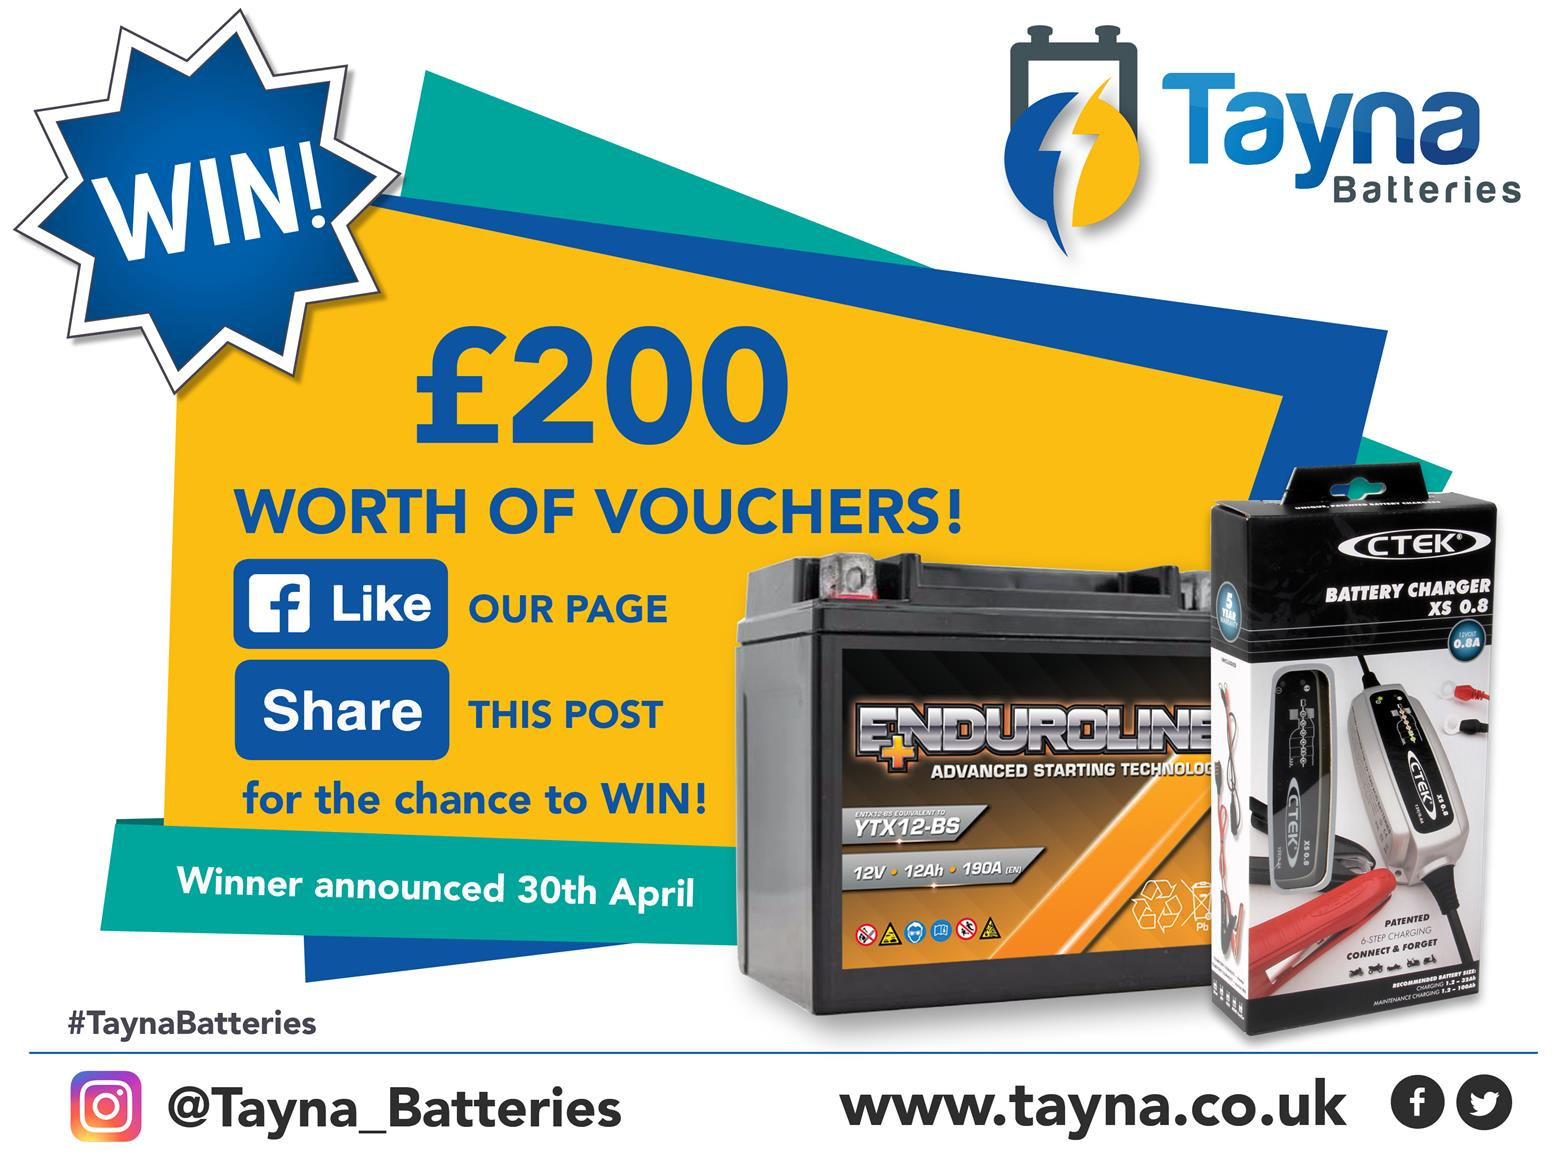 Tanya Batteries competition